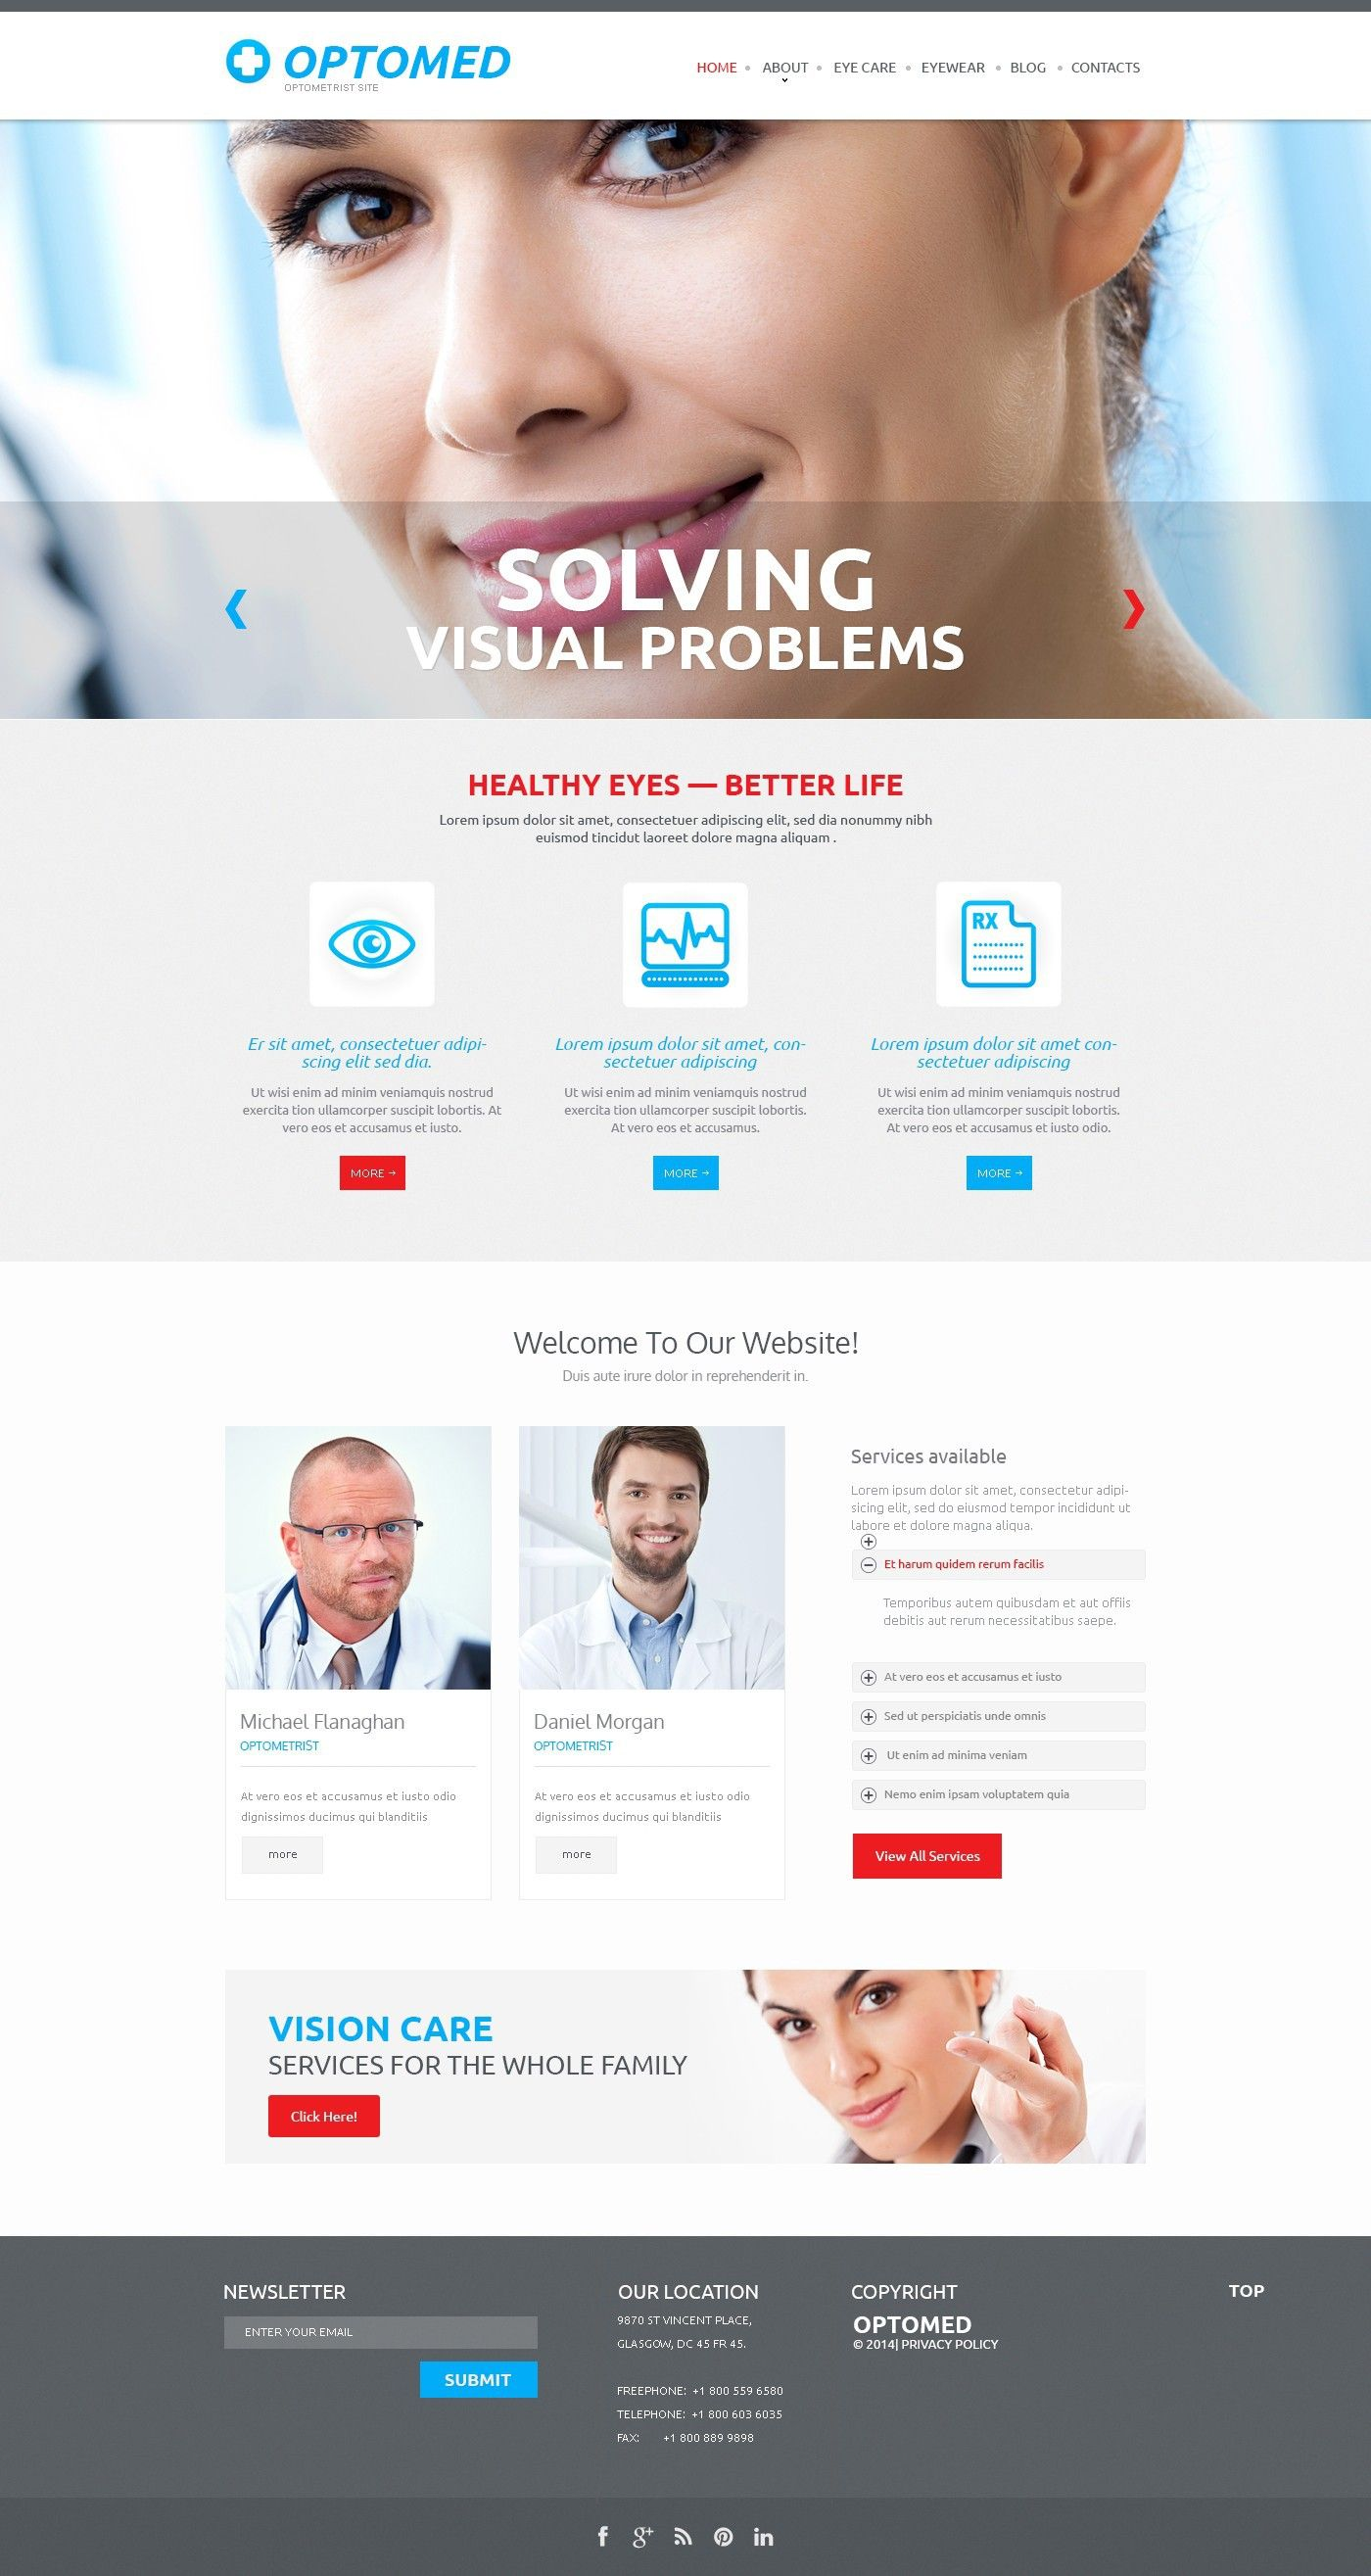 'Optomed Optometrists' static html #webdesign http://zign.nl/48096